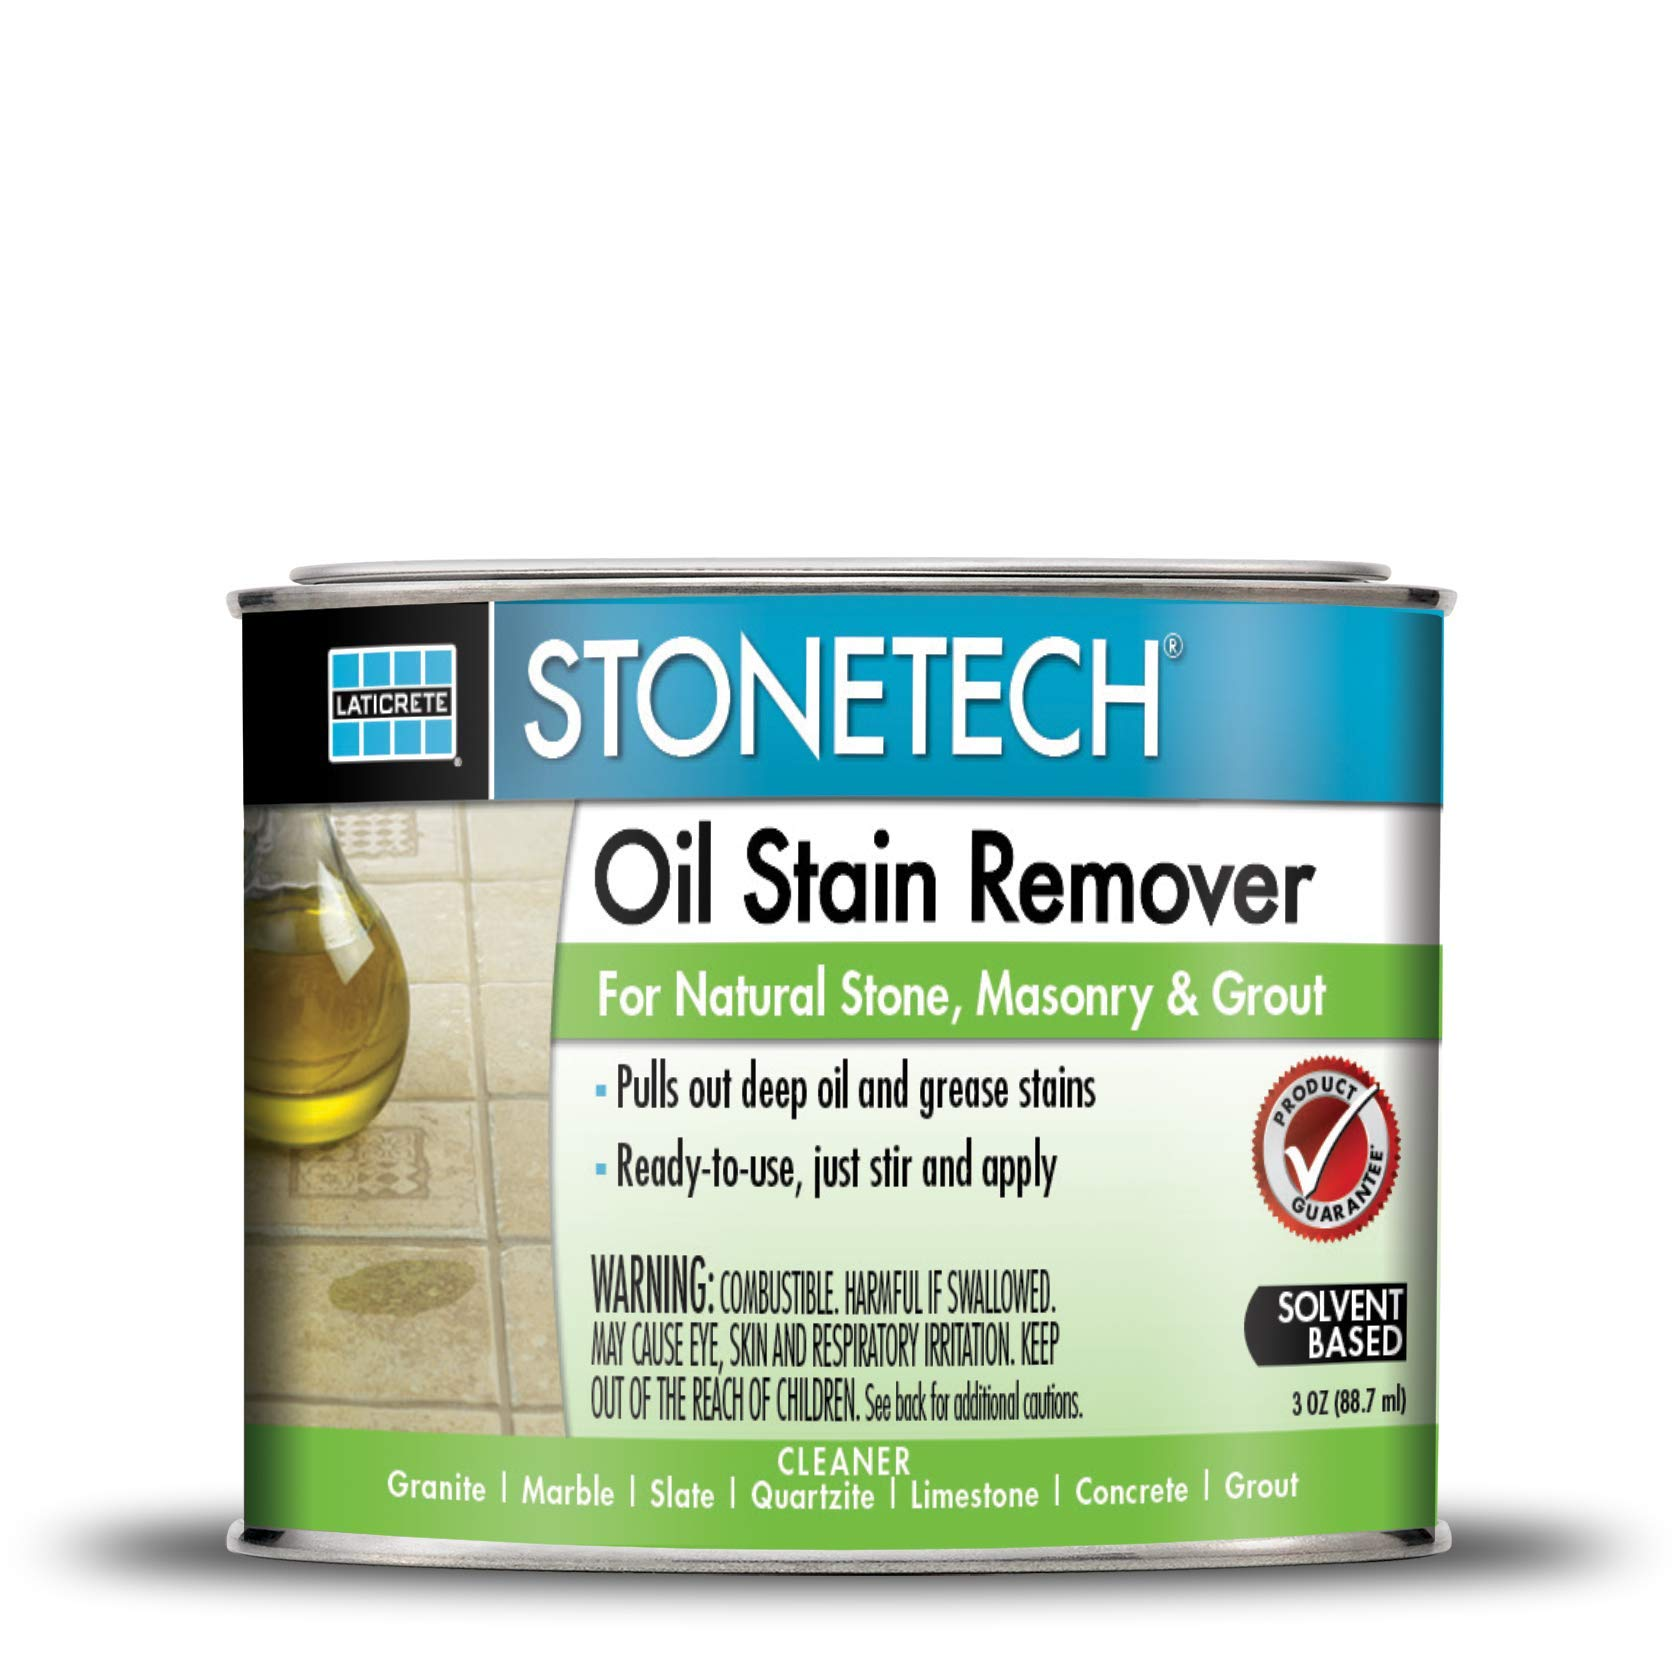 StoneTech Oil Stain Remover, Cleaner for Natural Stone, Grout, & Masonry, 3-Ounces (.089L)